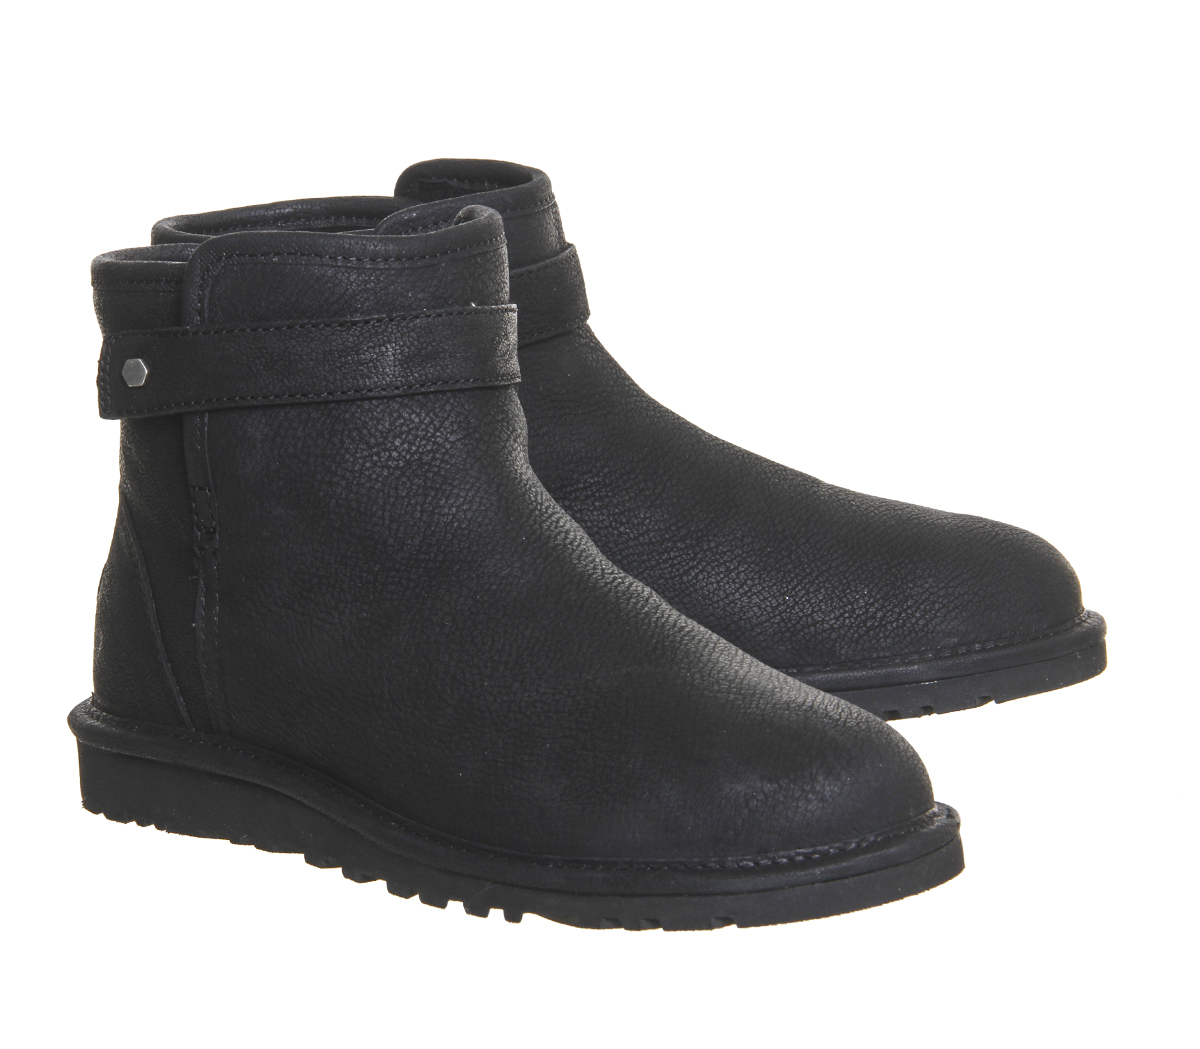 ugg rella boots in black lyst